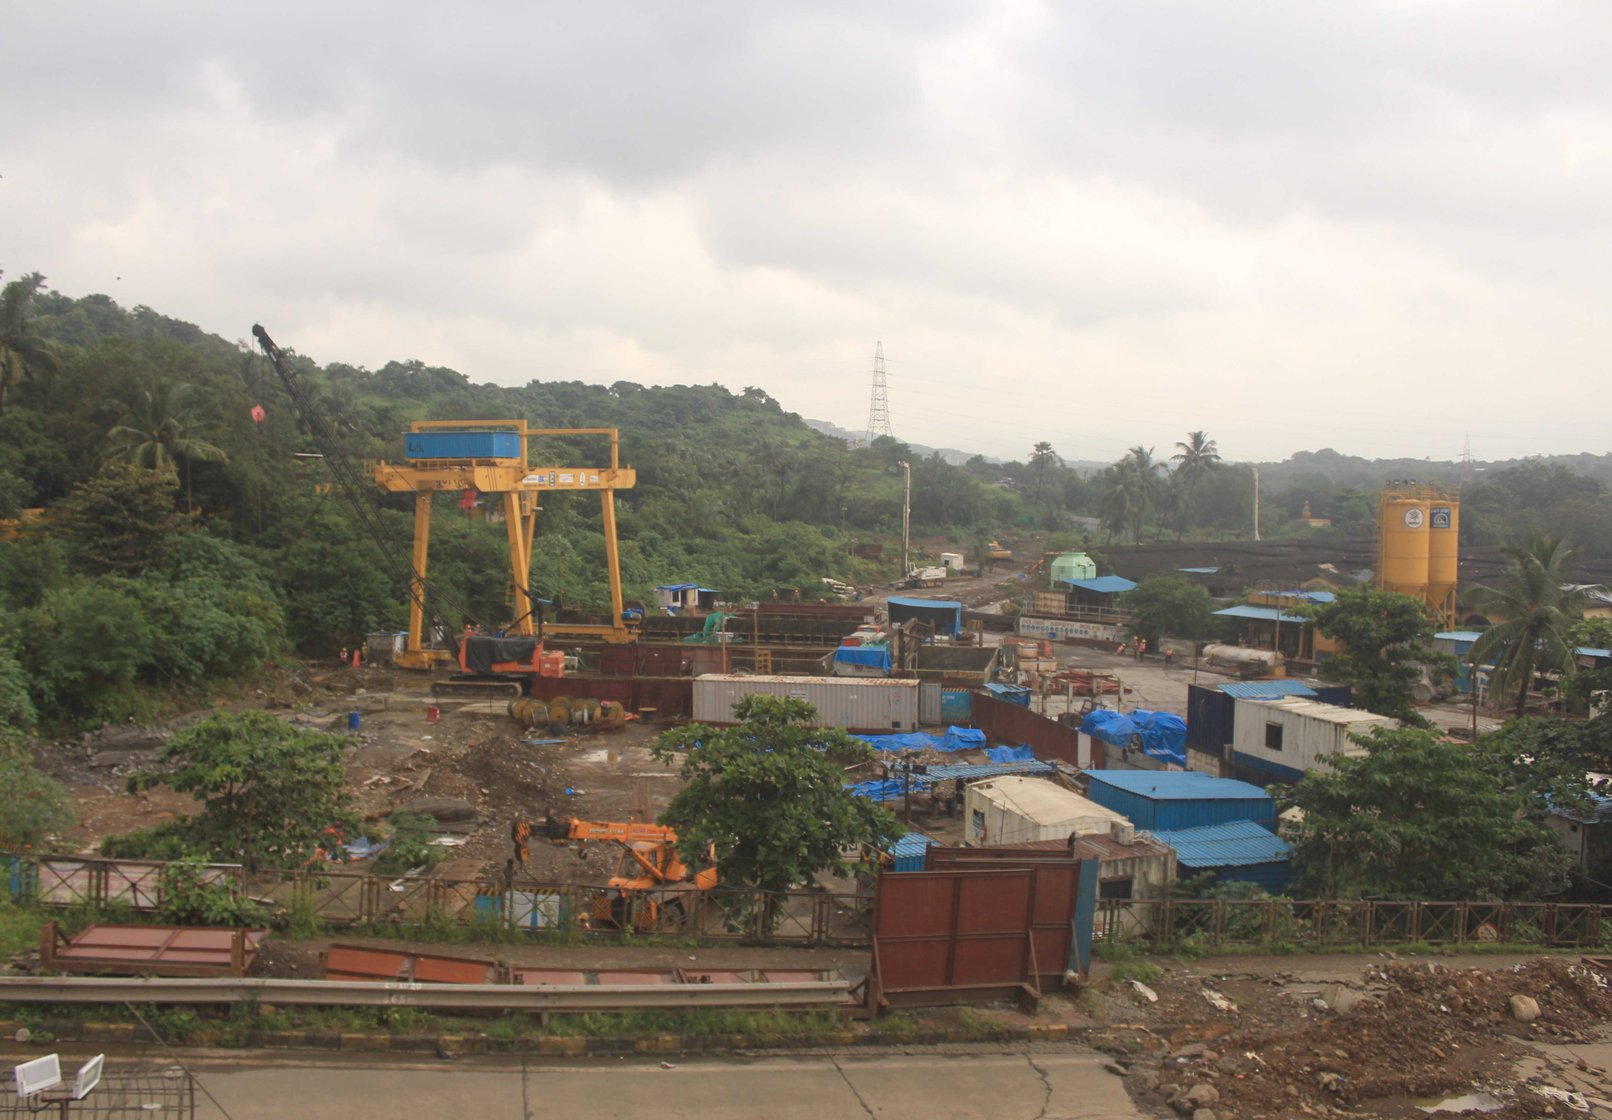 The Mumbai Metro car shed proposes to take over 75 acres of Aarey. This has triggered citizens' protests and litigation